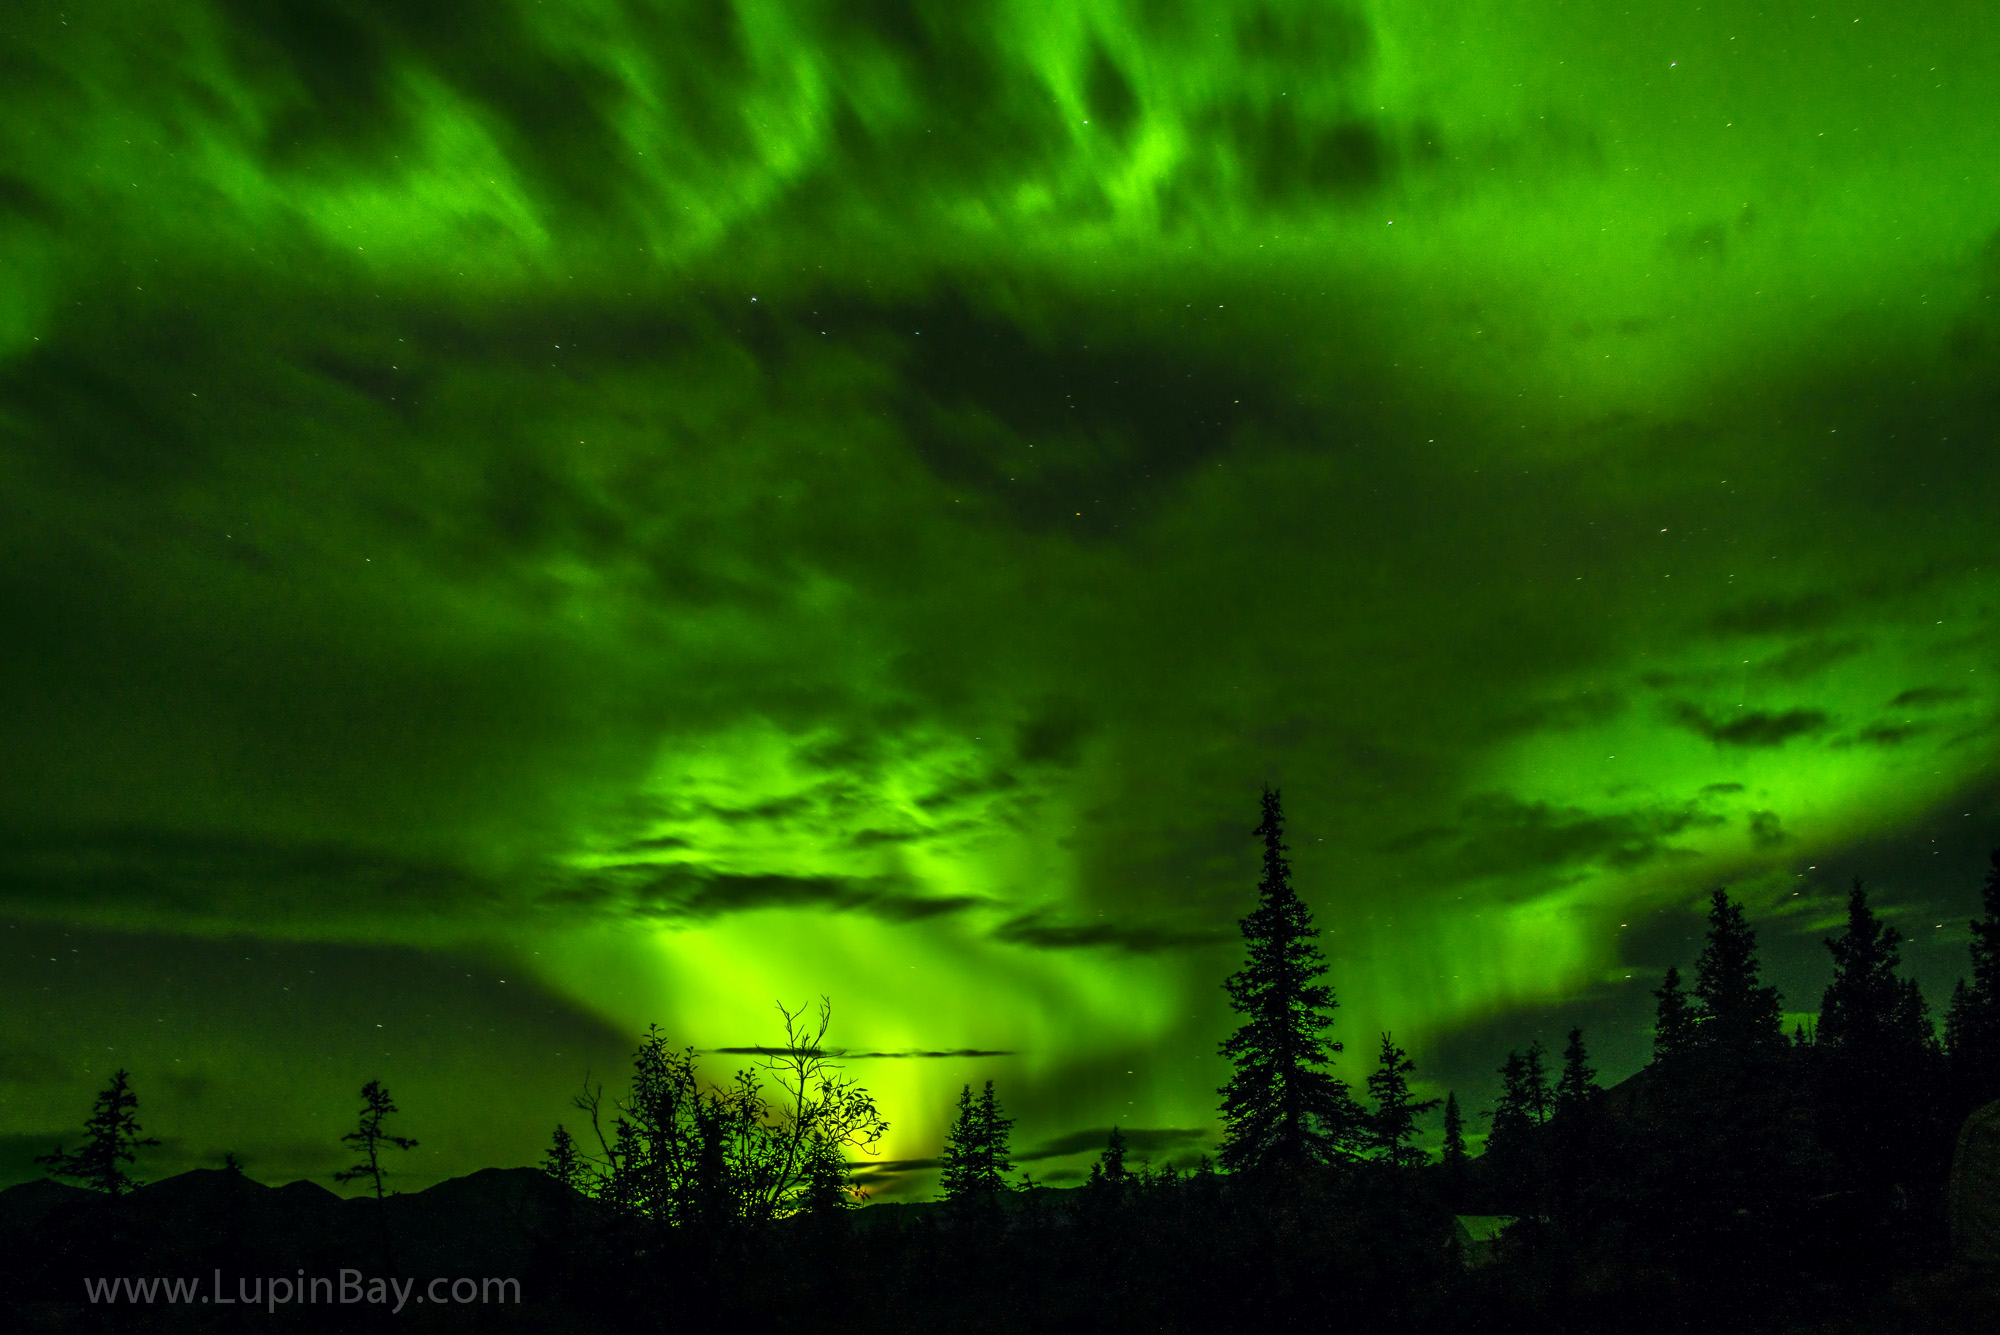 LupinBay-Alaska-Northern Lights-2215.jpg